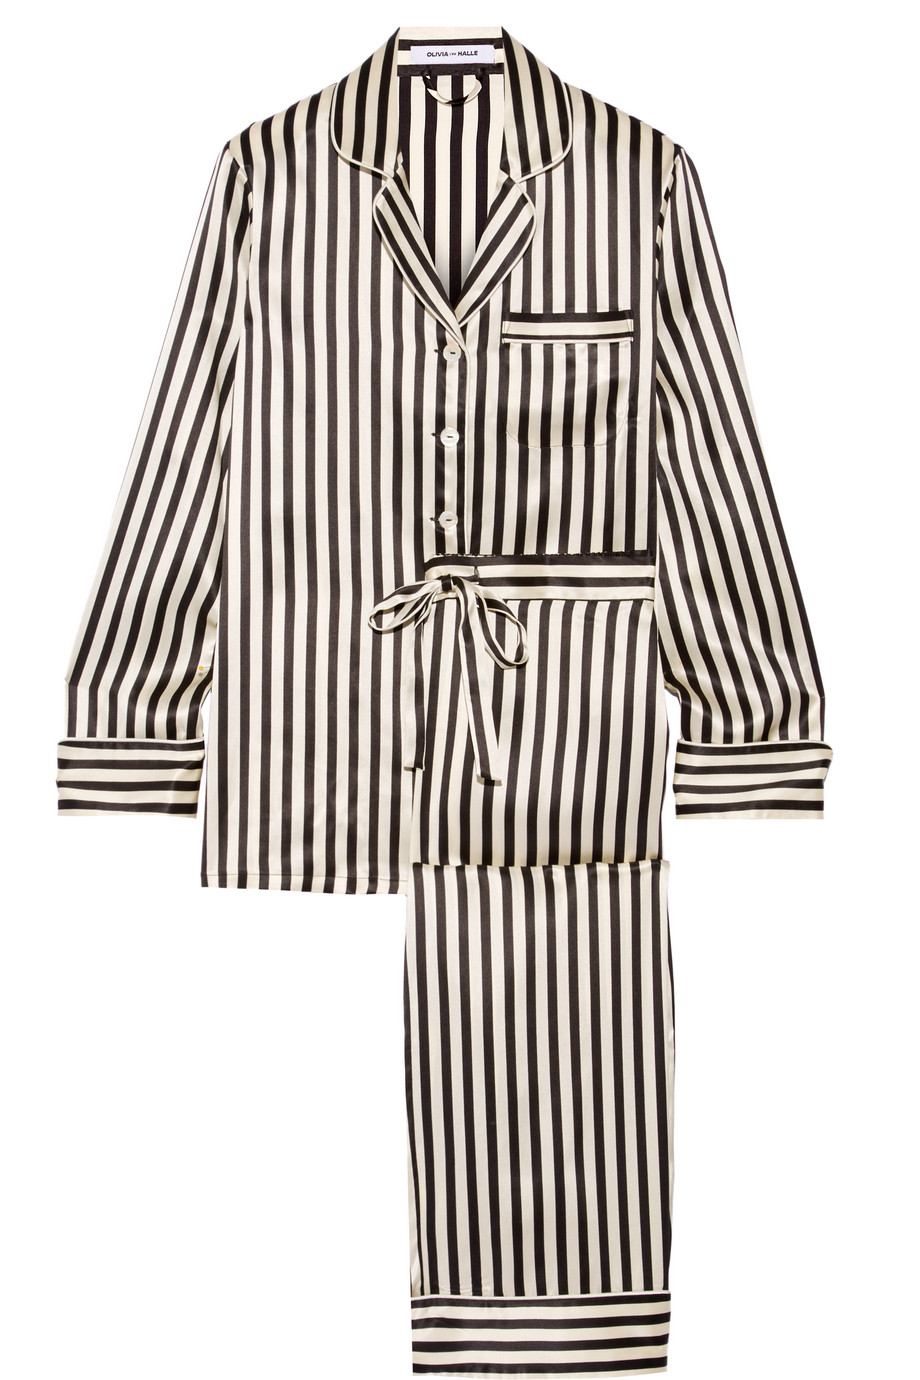 Lila Striped Silk-Satin Pajama Set, Olivia Von Halle, Black, Women's, Size: 4